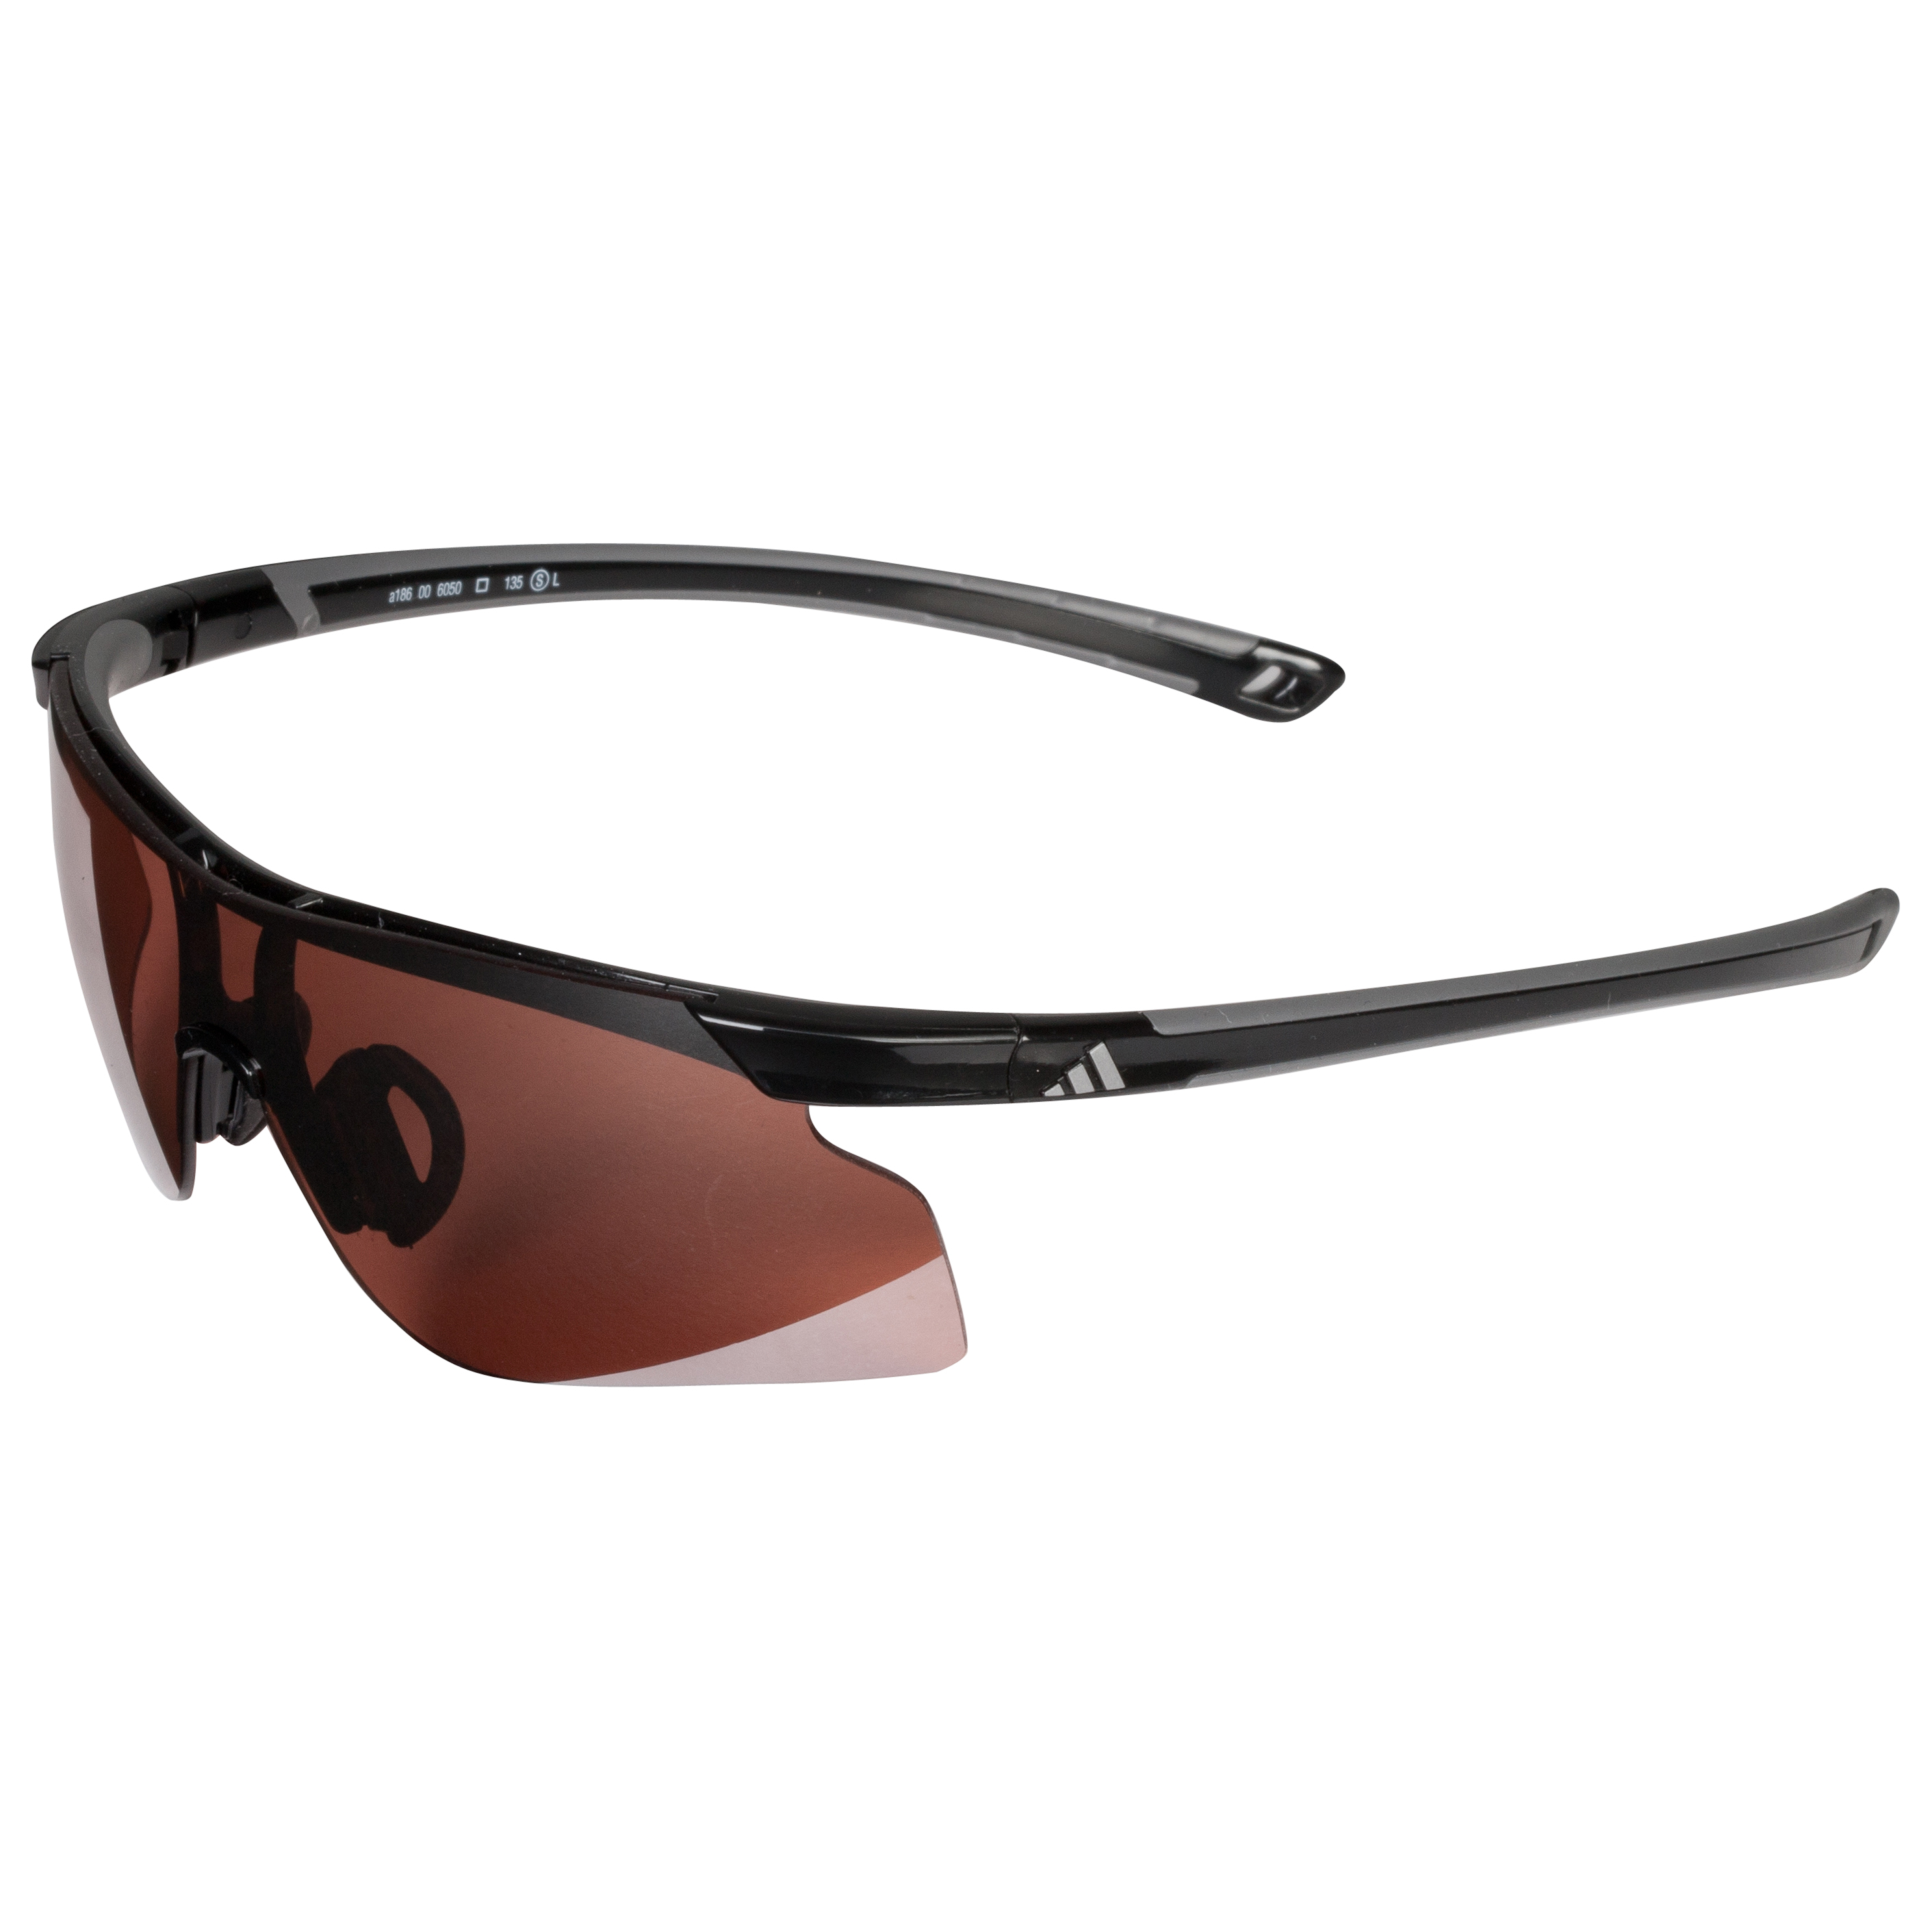 Adidas Adizero Tempo Sunglasses - Black - Small